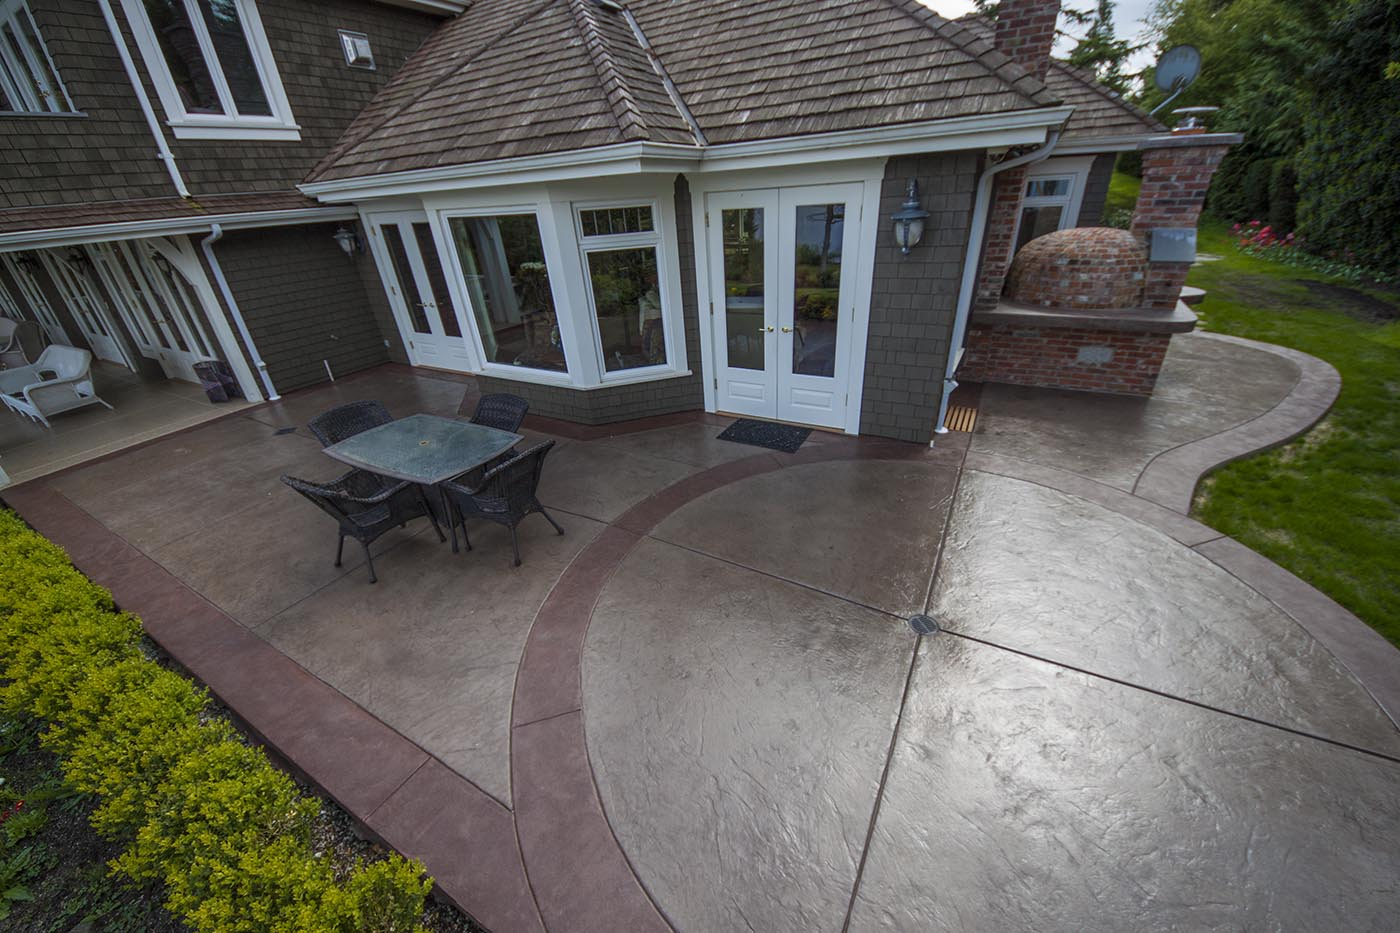 dyed concrete stamped canyon slate border patio | Flintstones ...